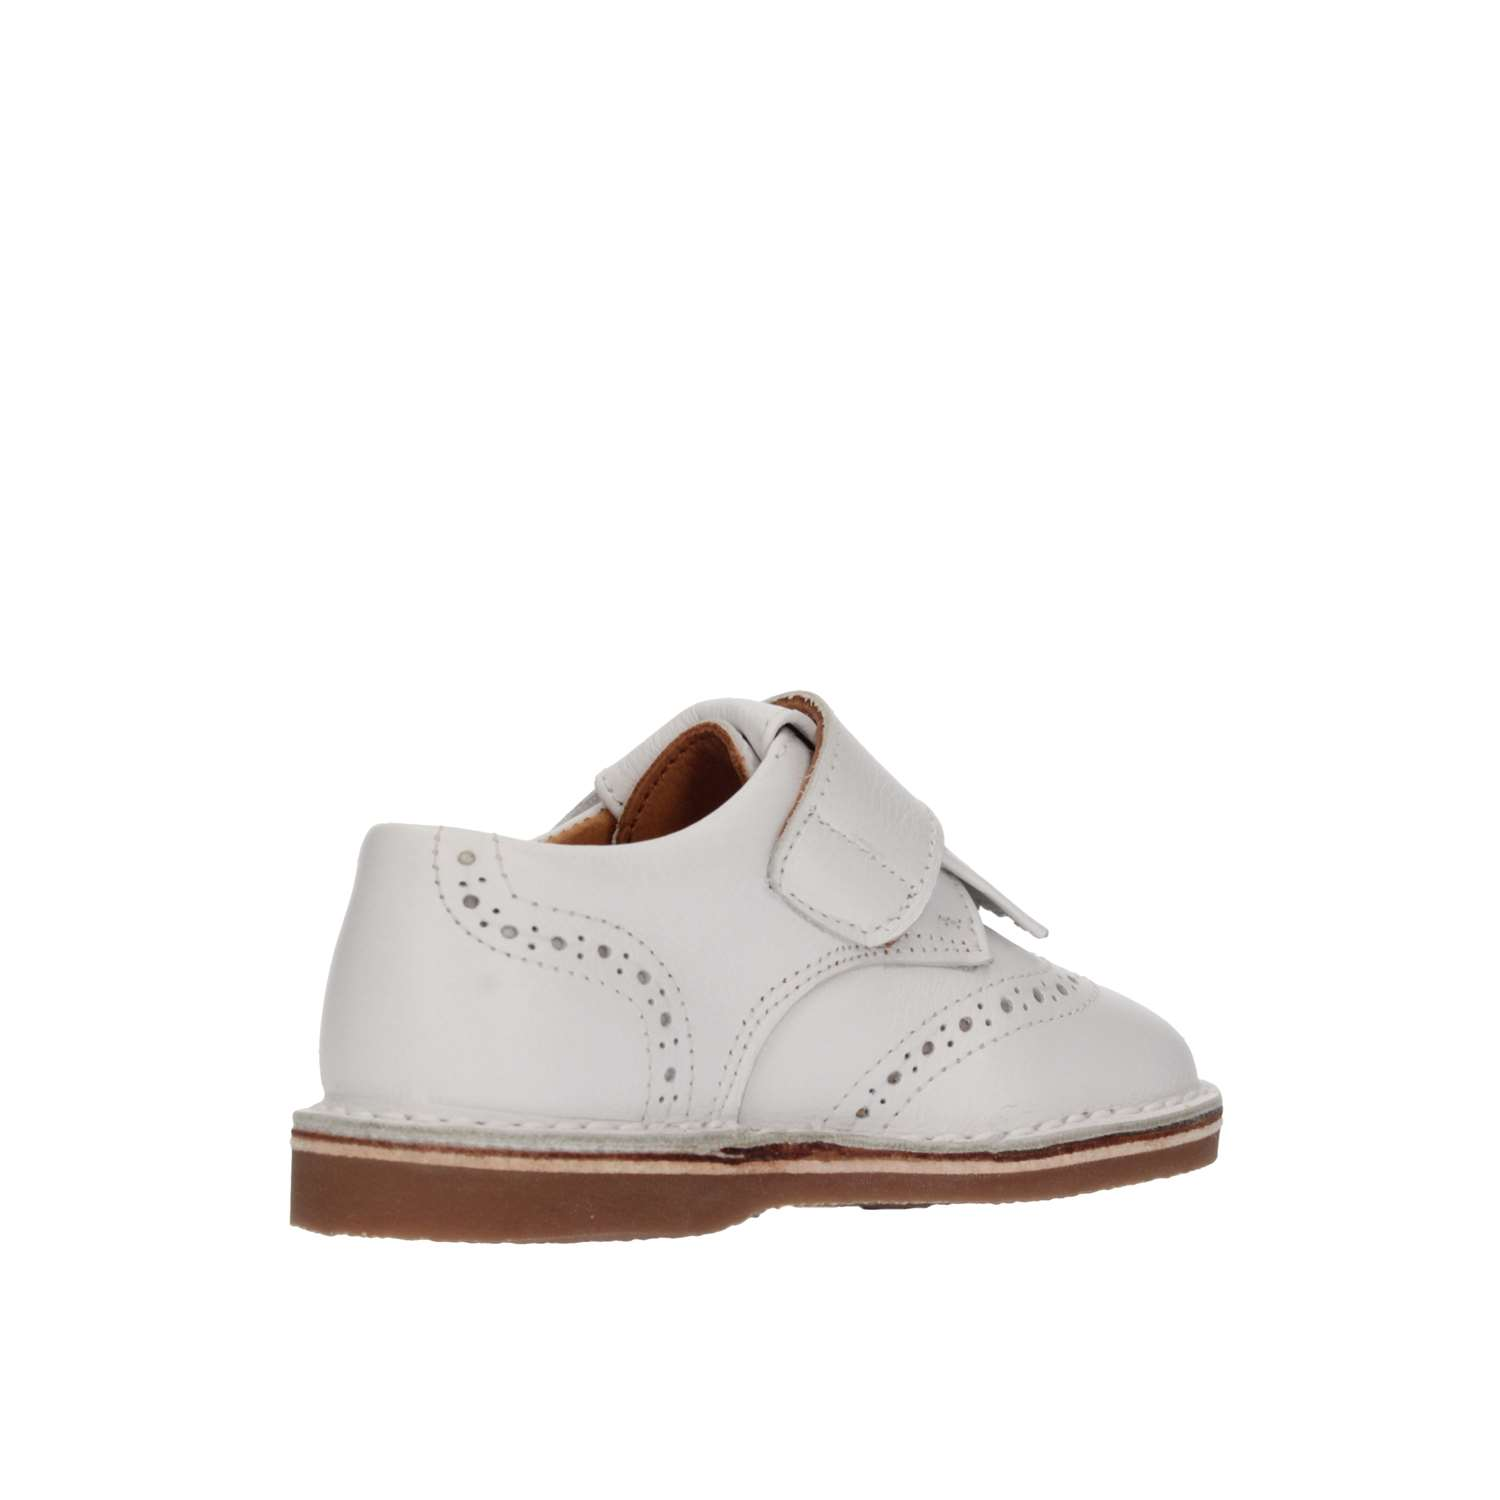 Eli 2212P BIANCO White Shoes Child